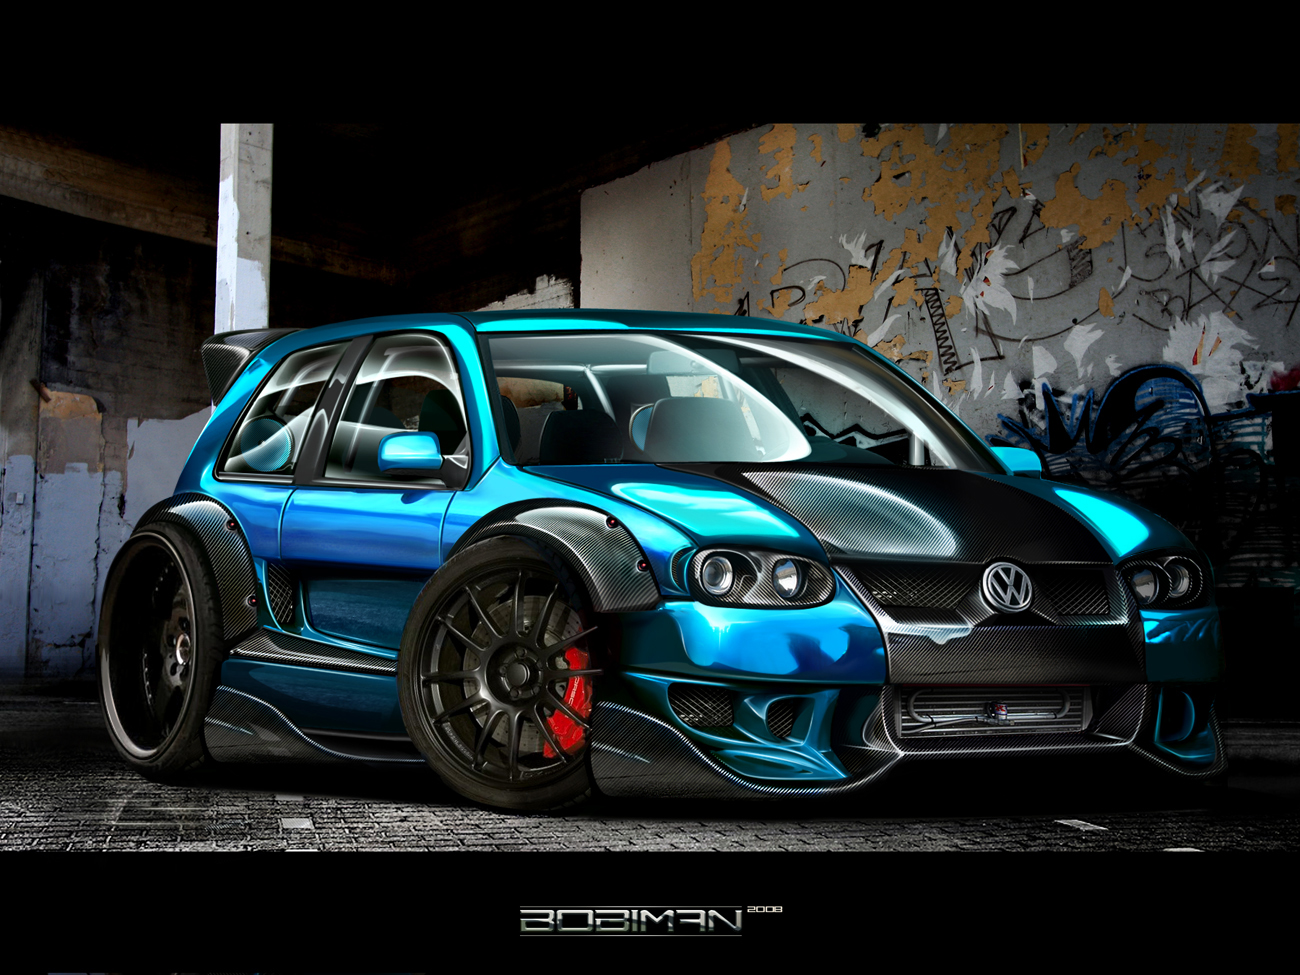 Nice Sports Car Wallpaper Automotive Engines Tips And Car Wallpaper